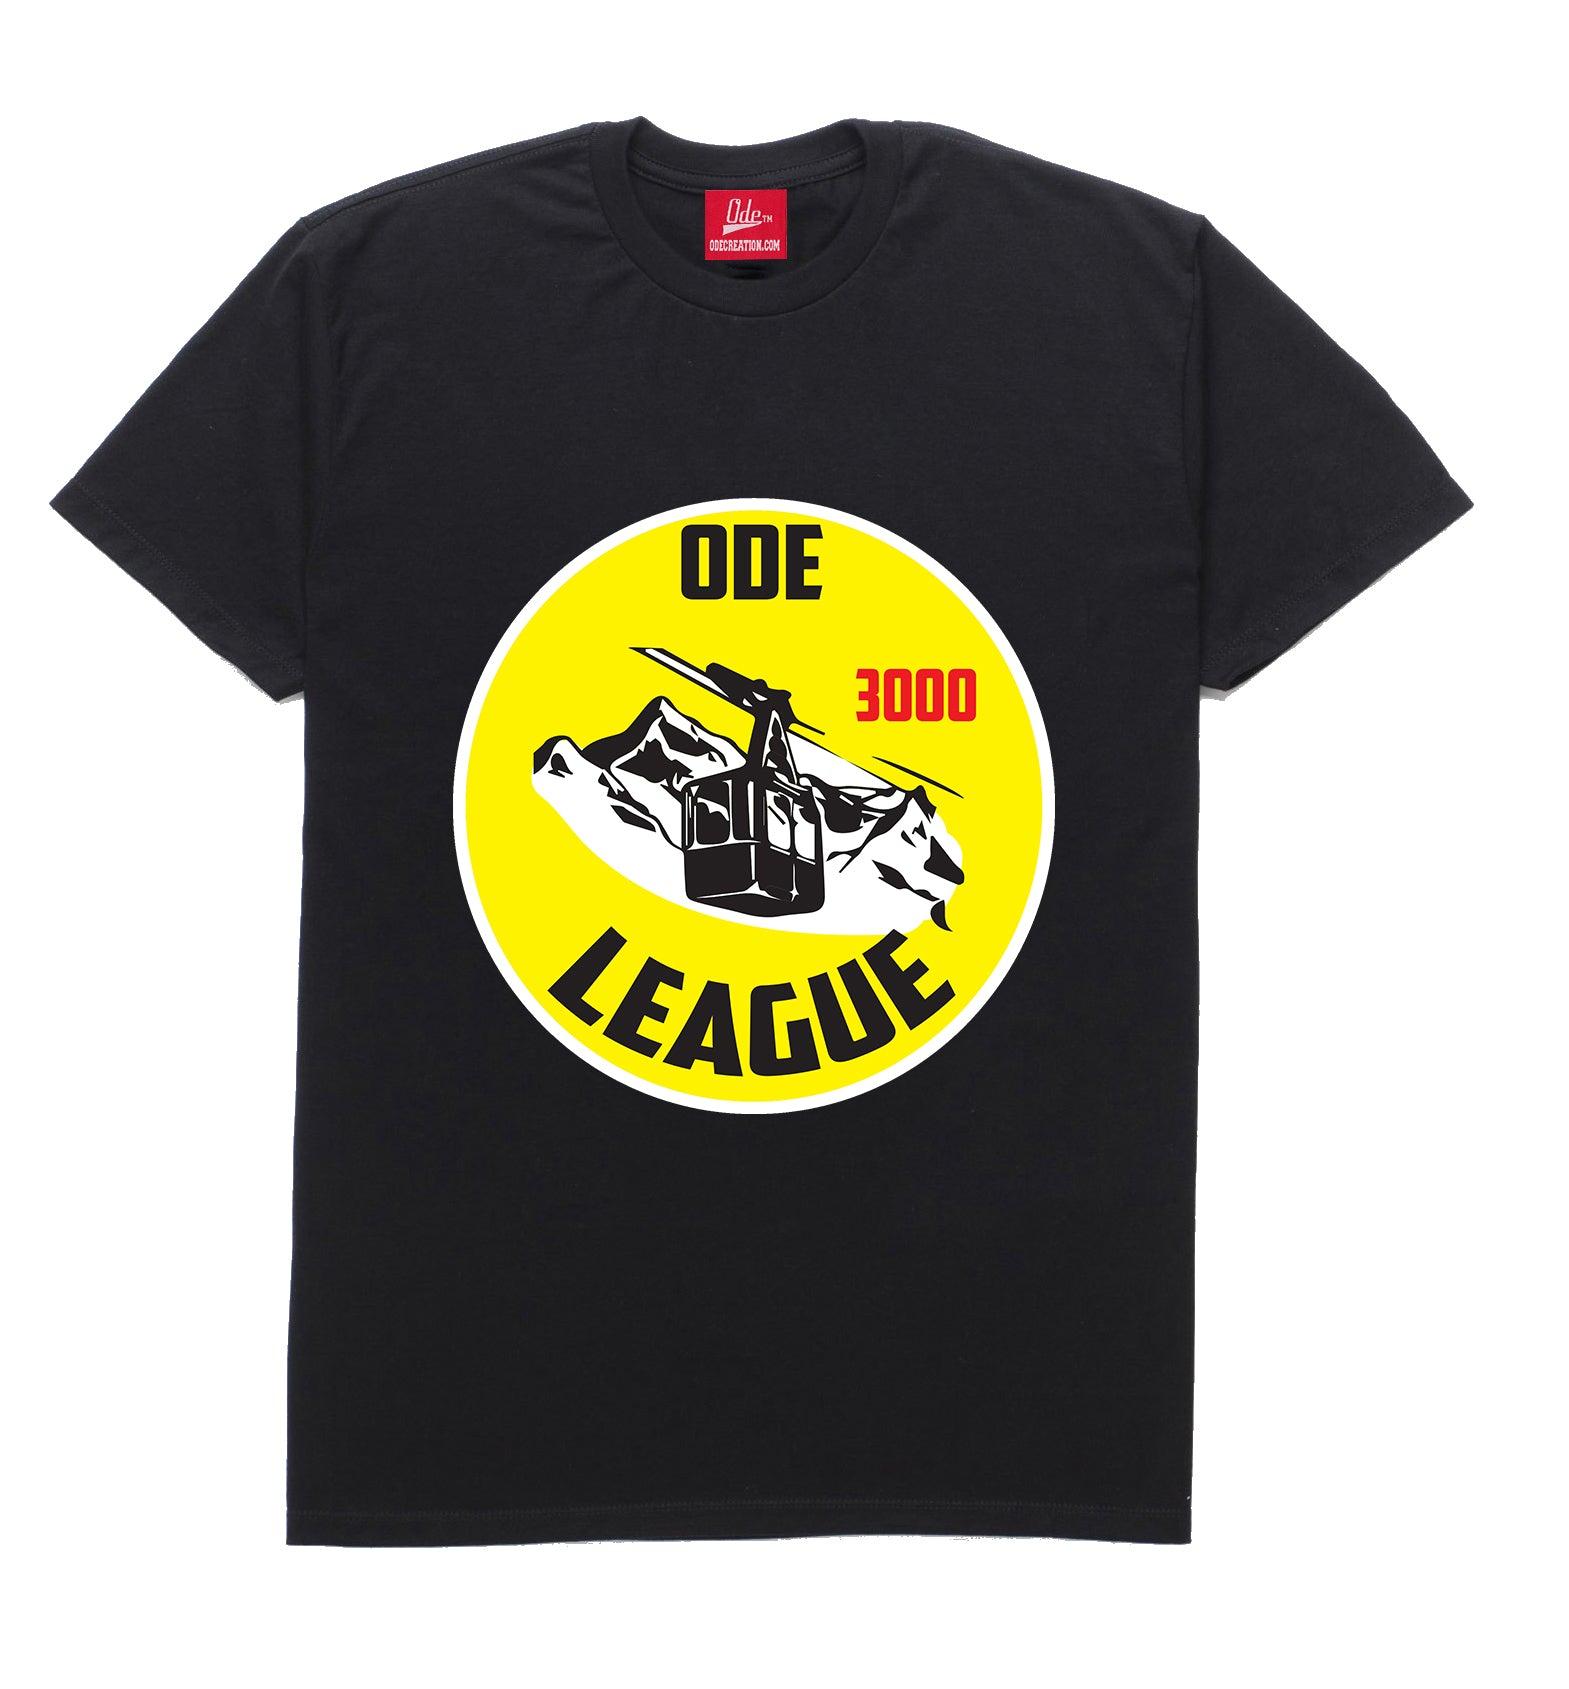 Ode Ski League 3000 T-Shirt Black